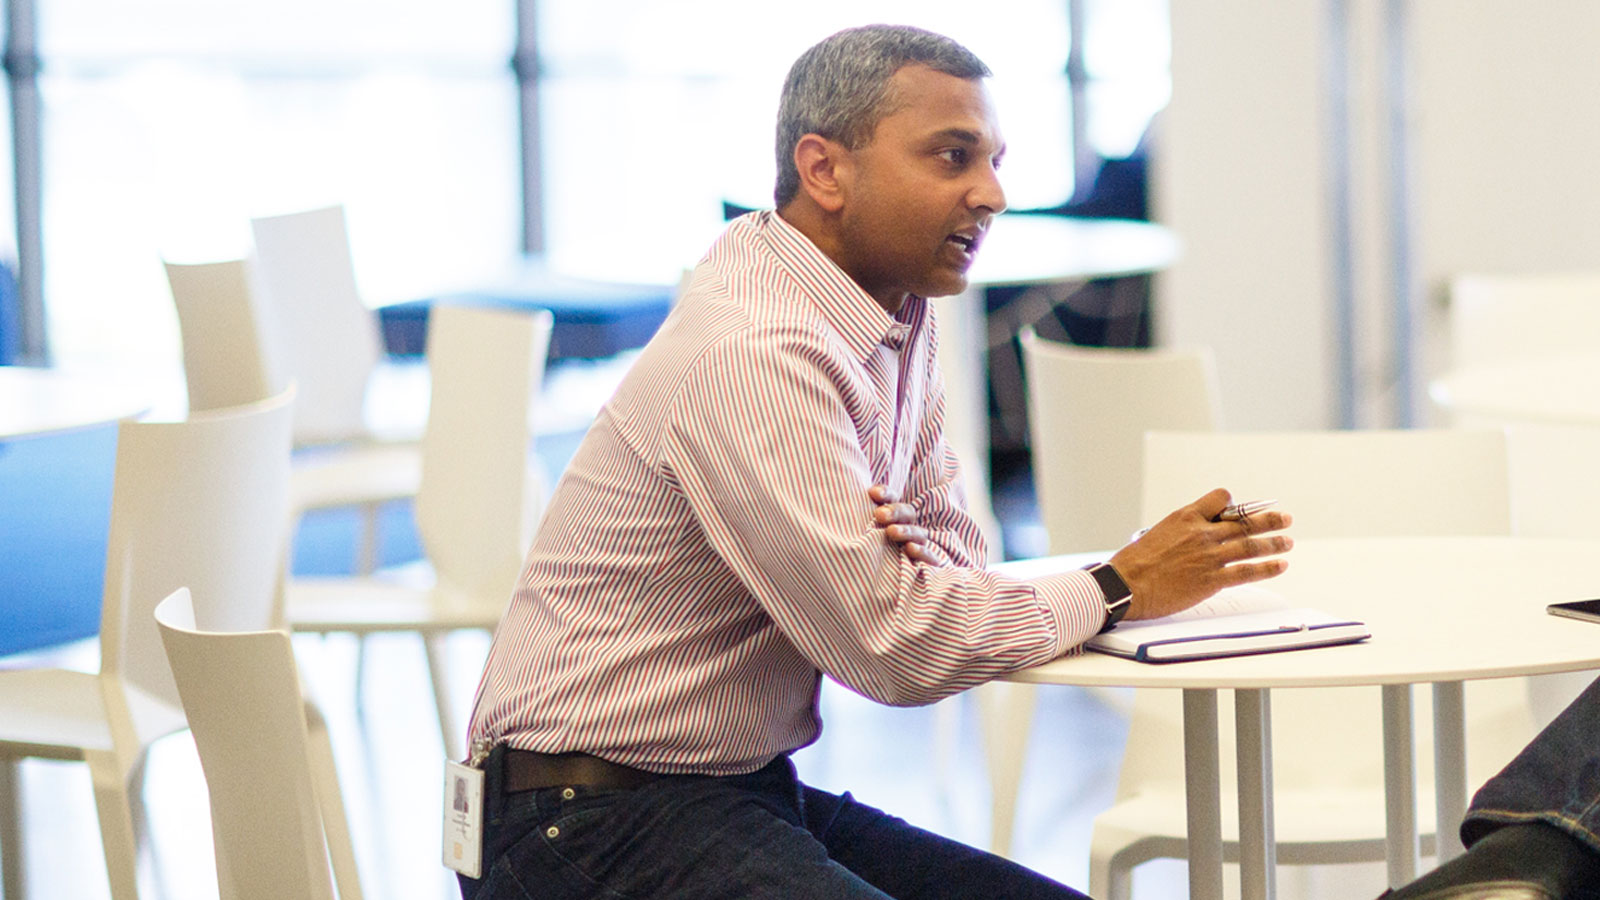 A man sitting at a desk who is having conversation with others.